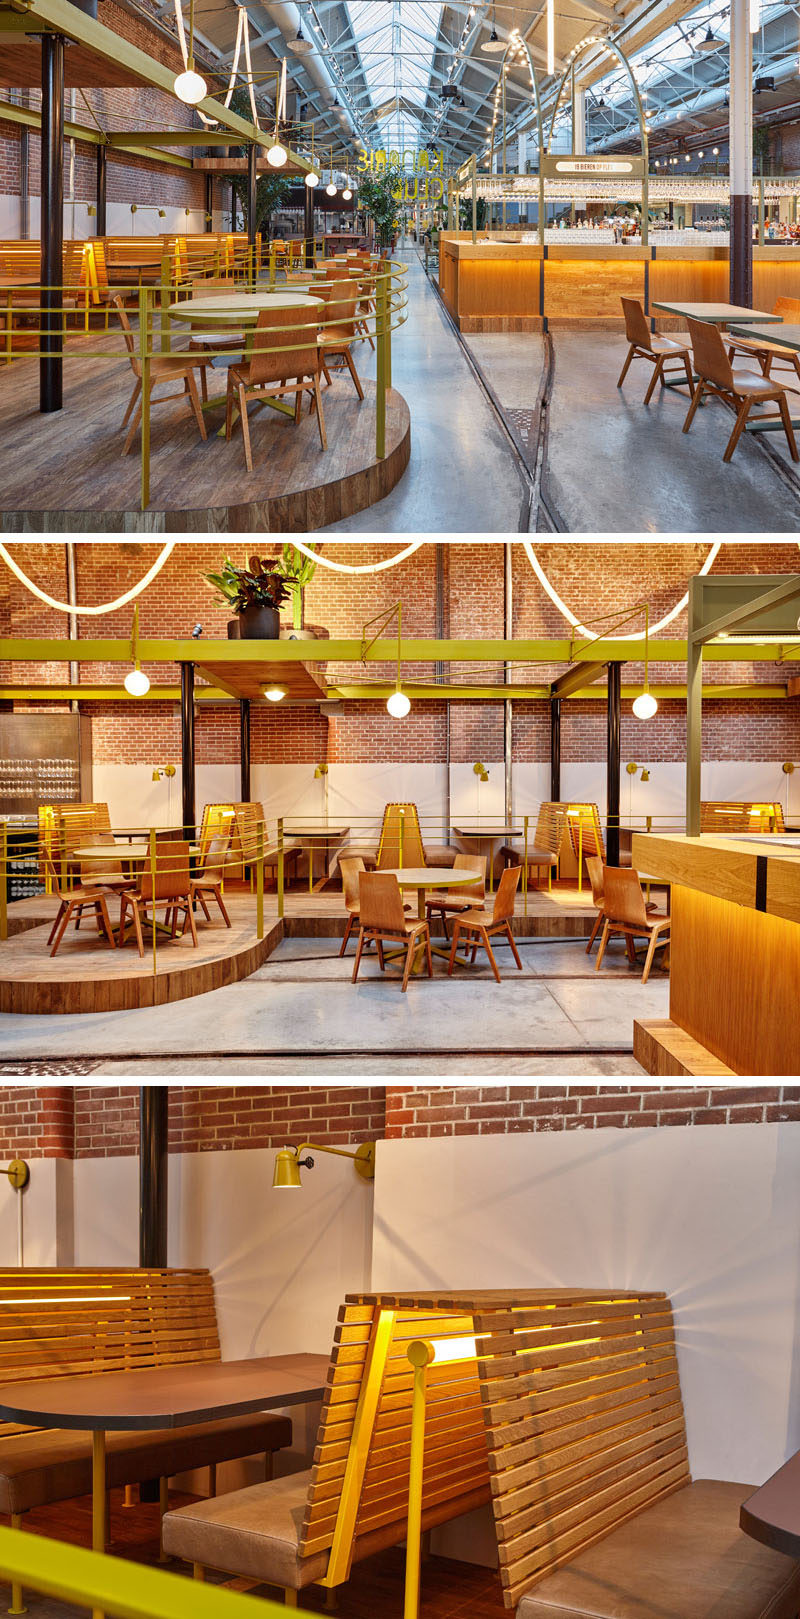 In this renovated tram depot that's now a restaurant, custom made furniture throughout resembles the vintage design of the old electric tram seats.